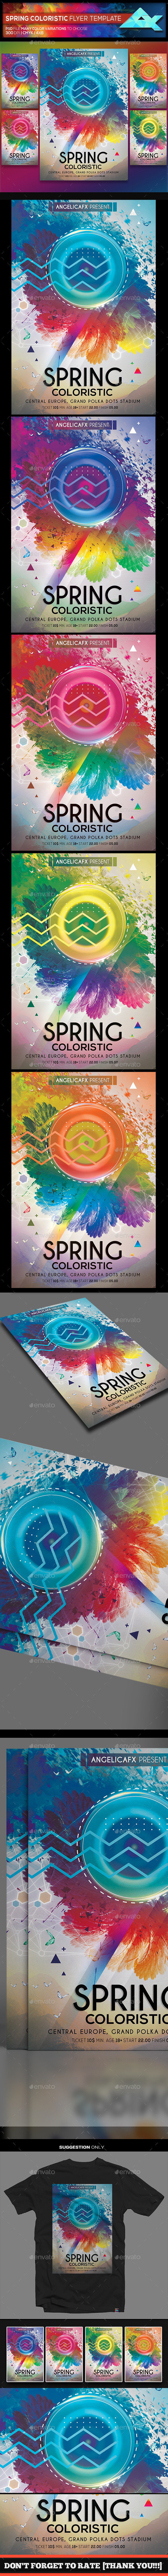 Spring Colorific Flyer Template - Flyers Print Templates